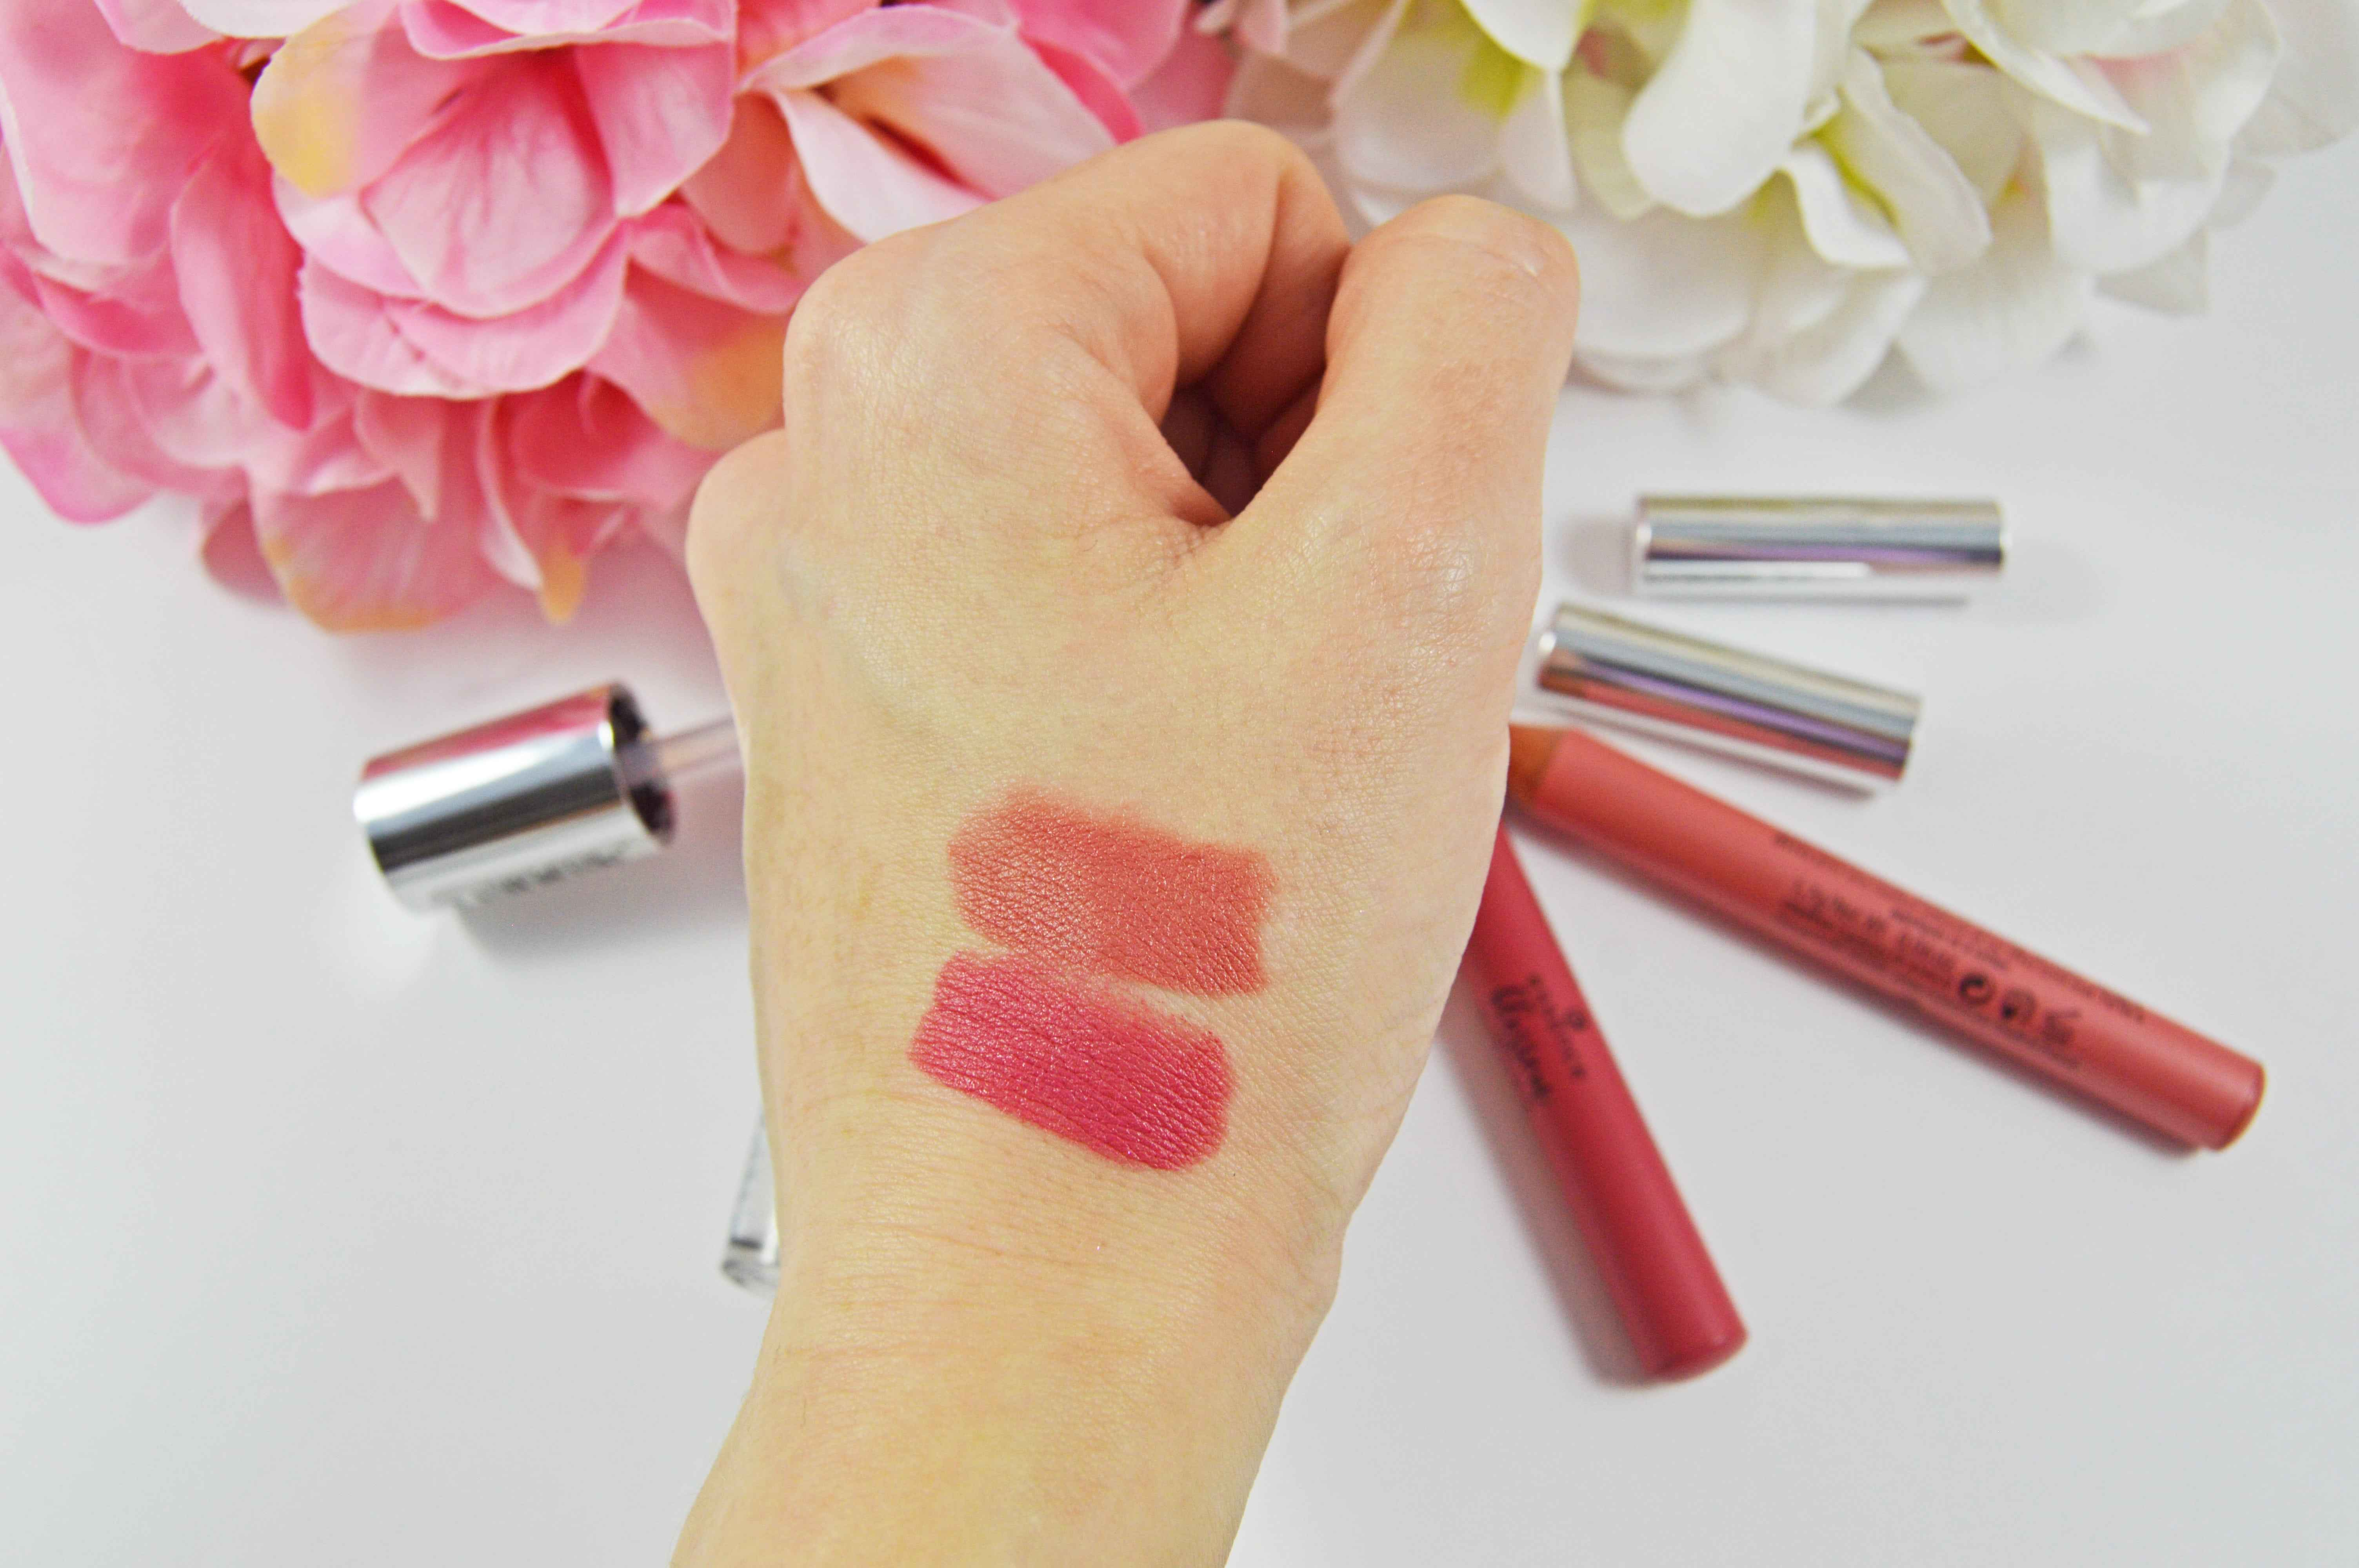 Essence blossom dreams lips swatches-min